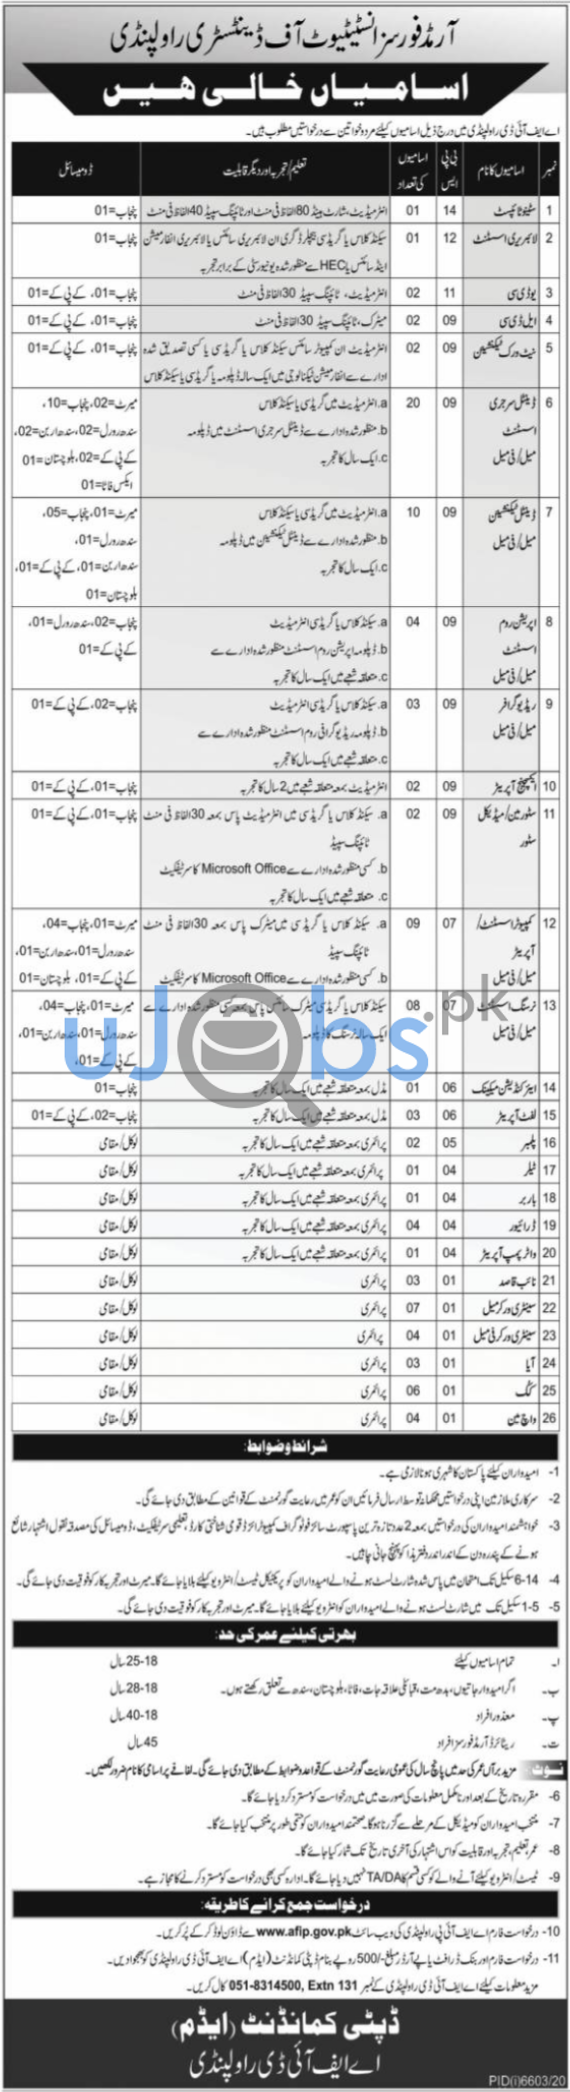 Government Jobs in Rawalpindi June 2021 at Armed Forces Institute of Dentistry AFID